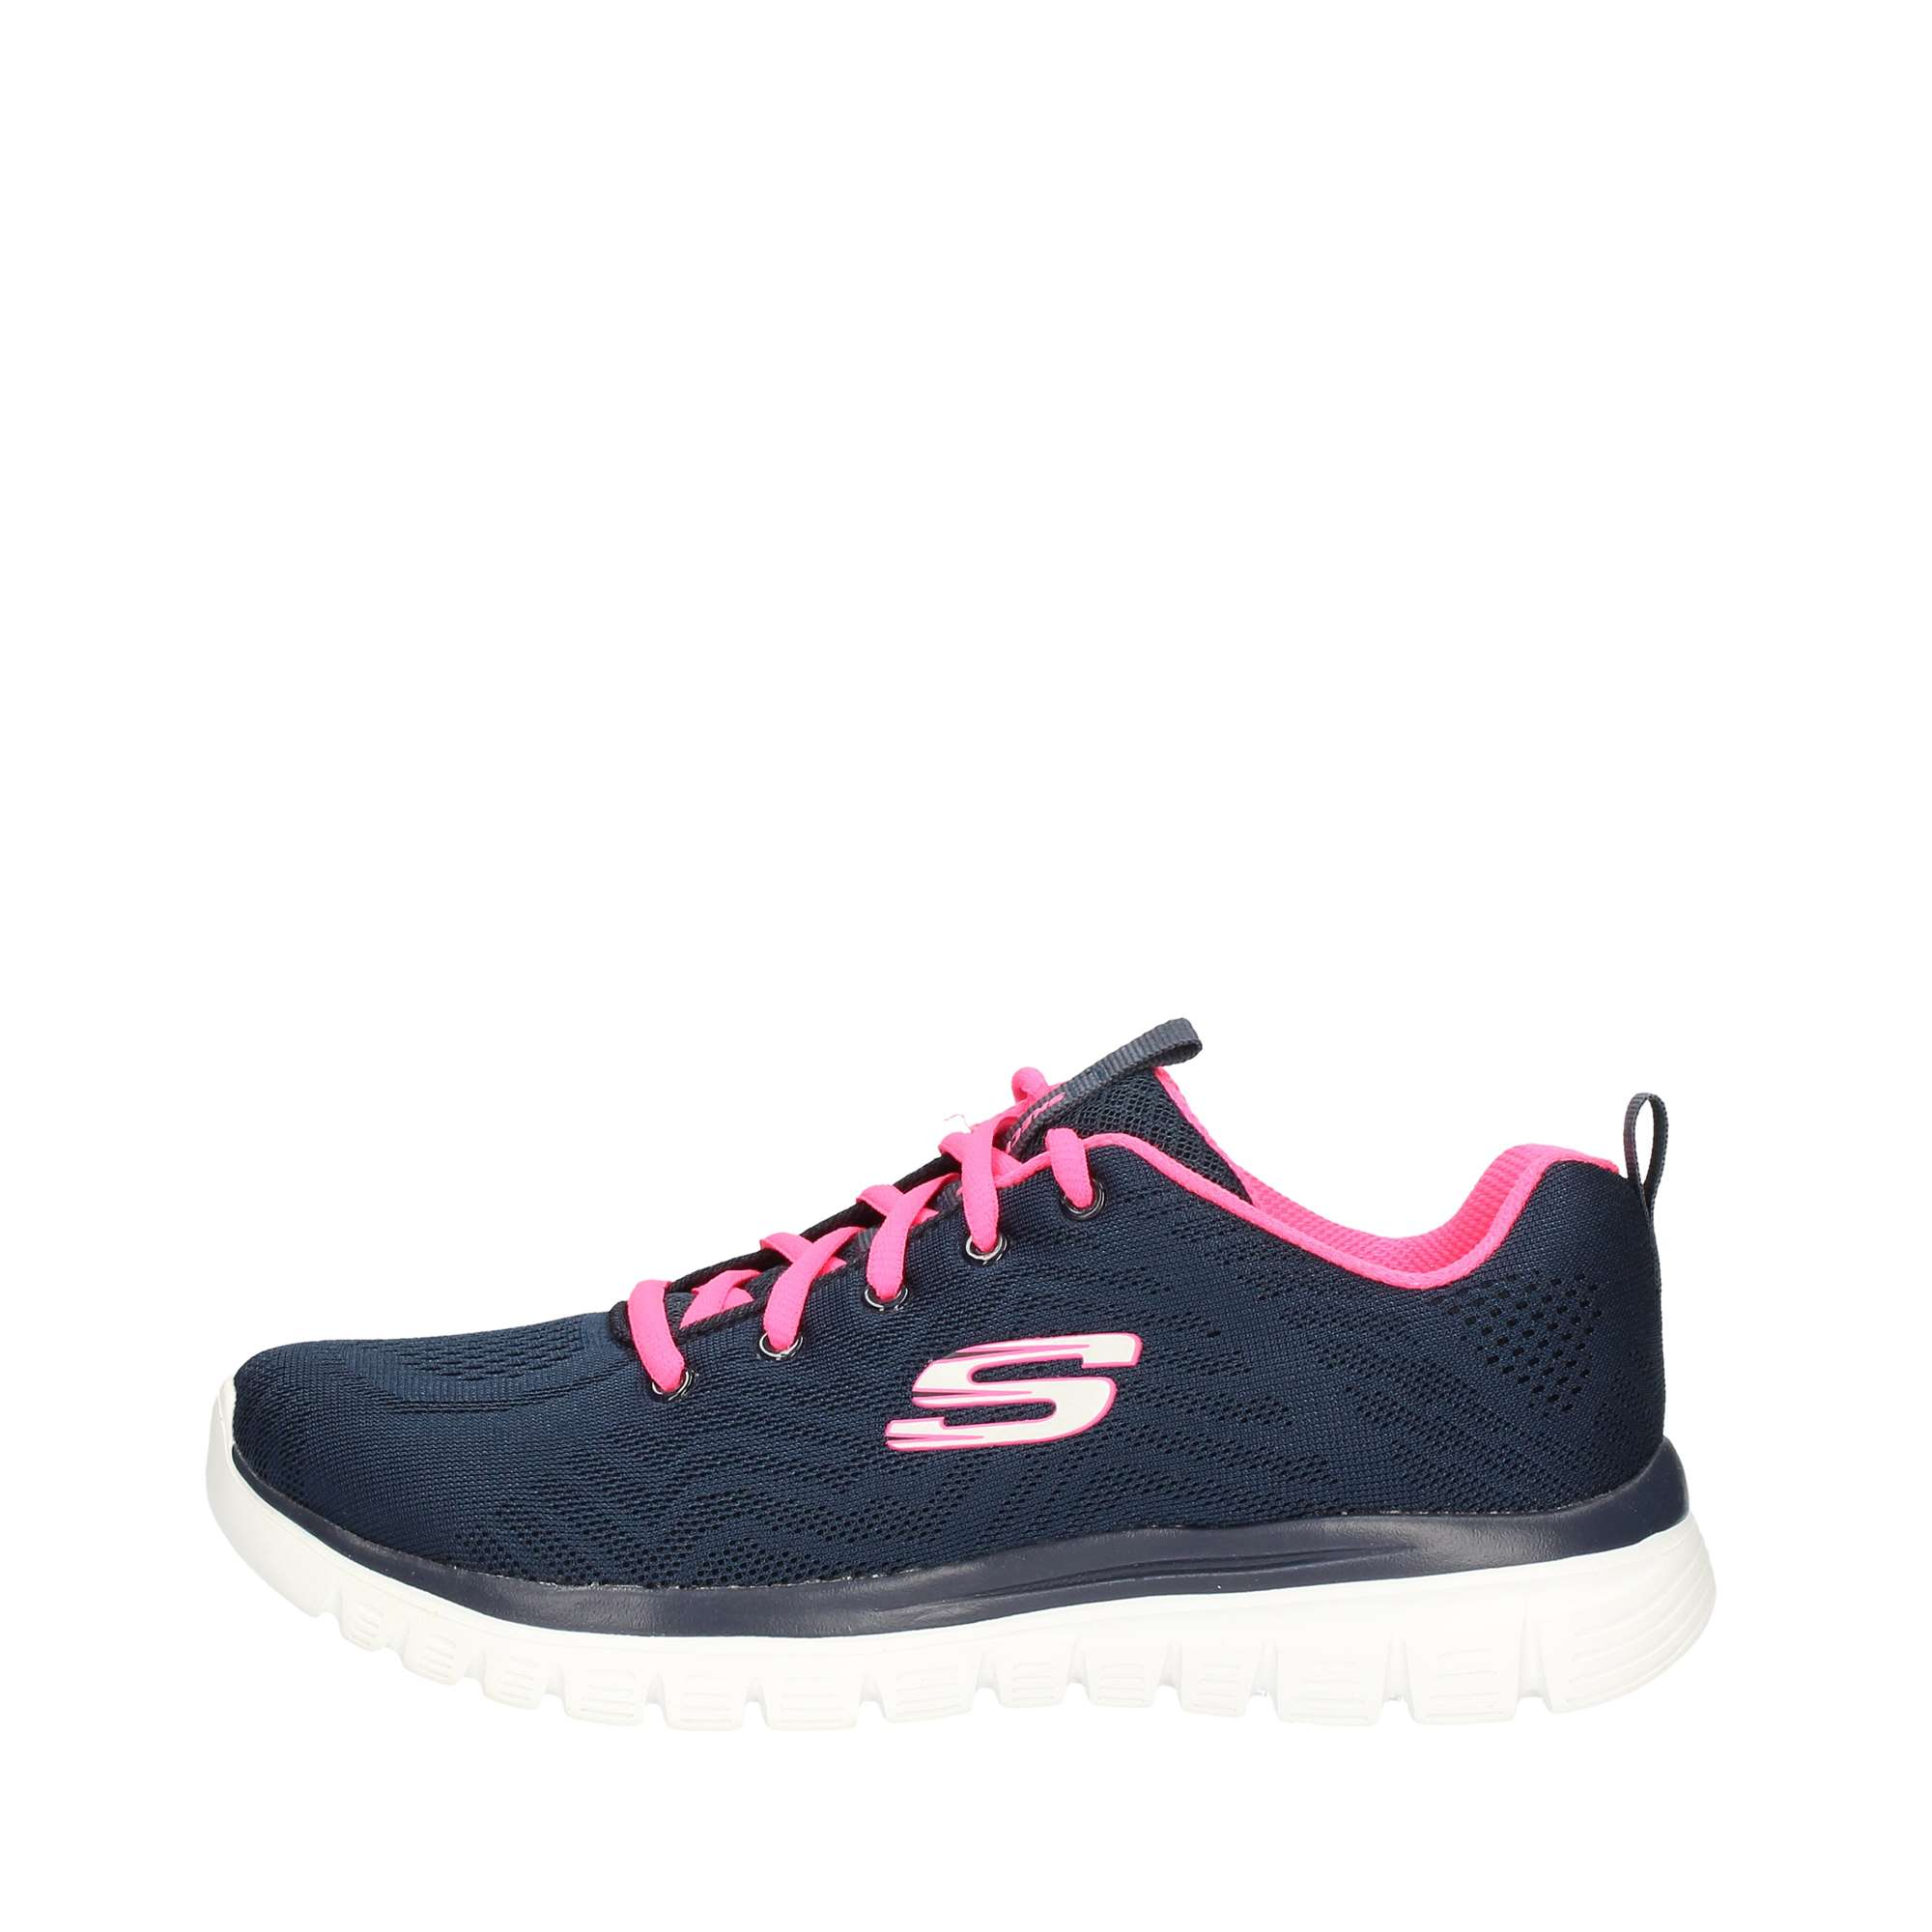 SKECHERS 12615 12615 12615 SNEAKERS Damenschuhe Autunno/Inverno b7bfe5